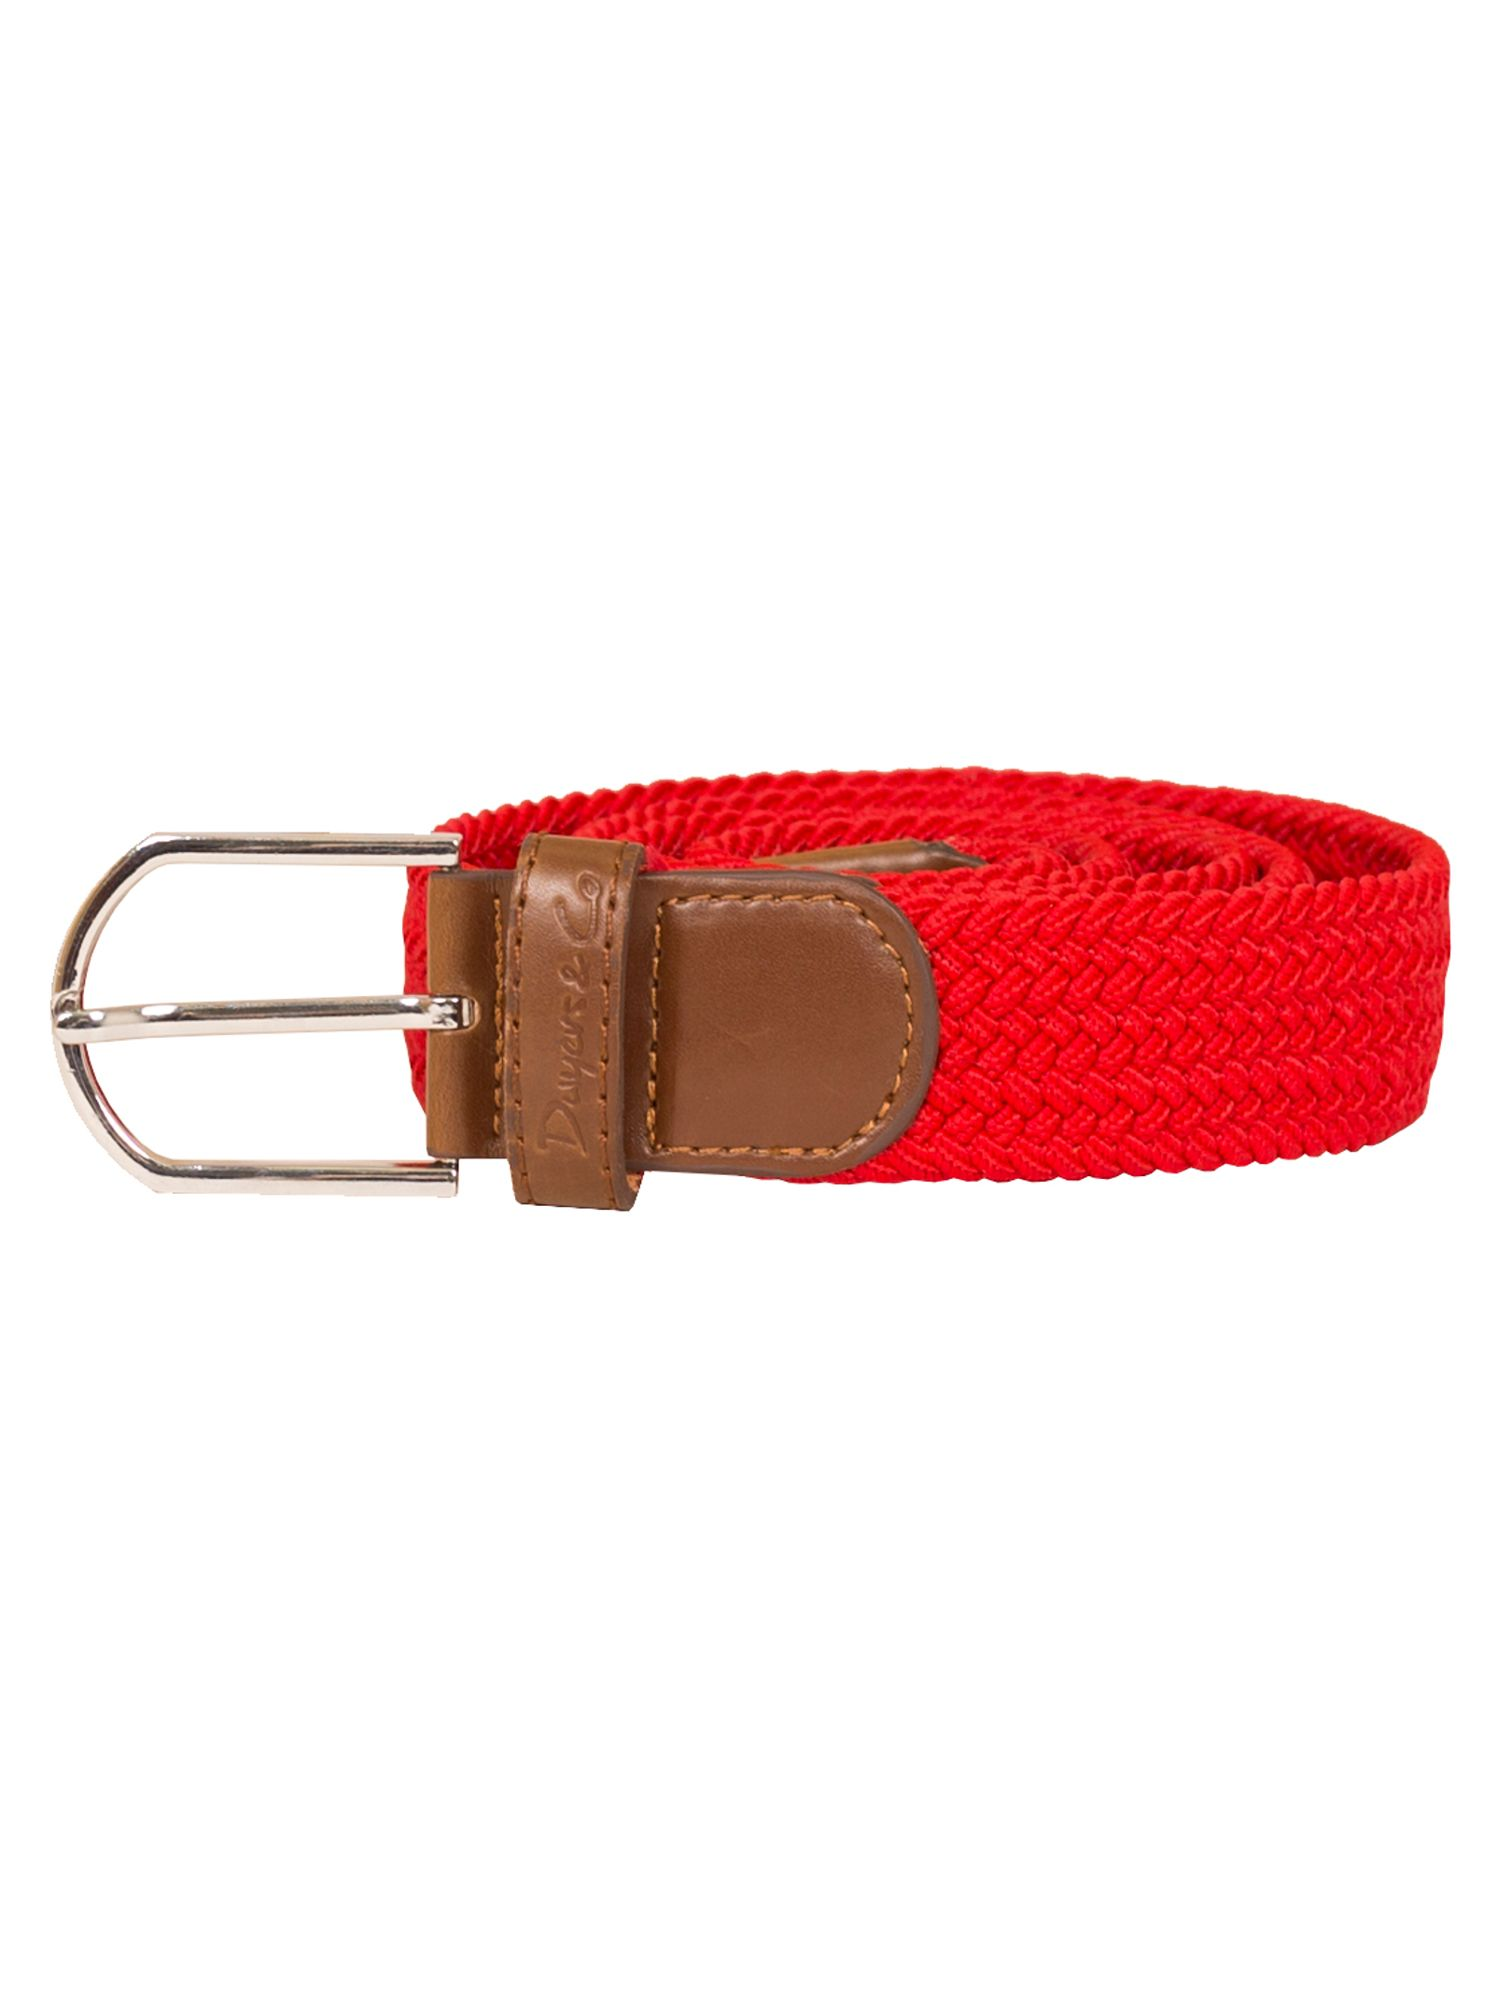 Dwyers and Co Dwyers and Co Woven Belt, Red